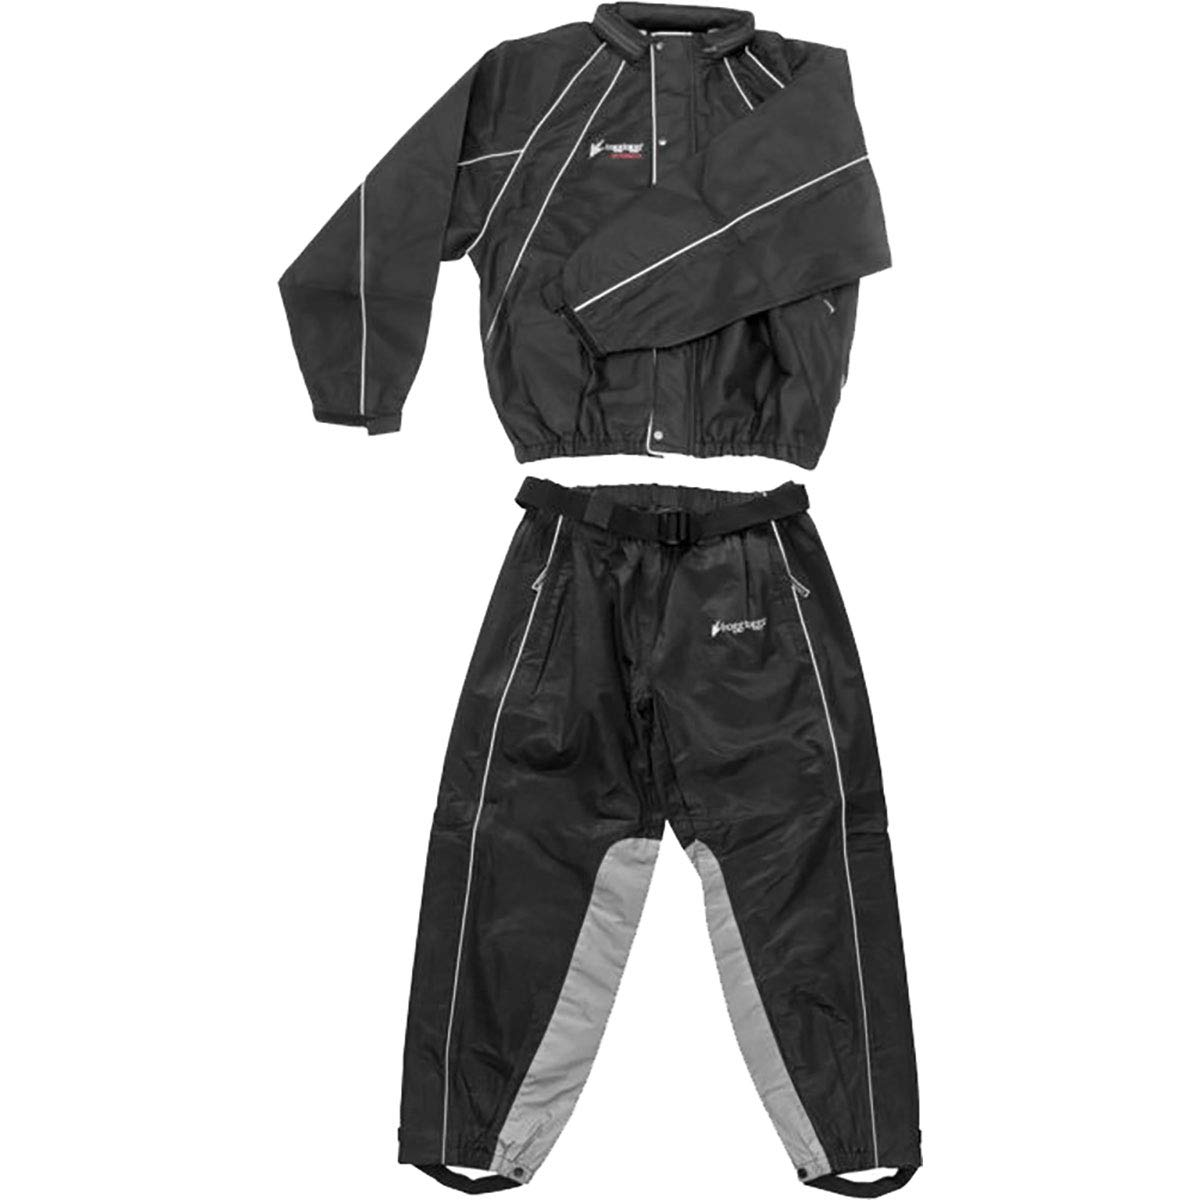 Frogg Toggs Hogg Togg Men's Street Motorcycle Rainsuit - Black/Large